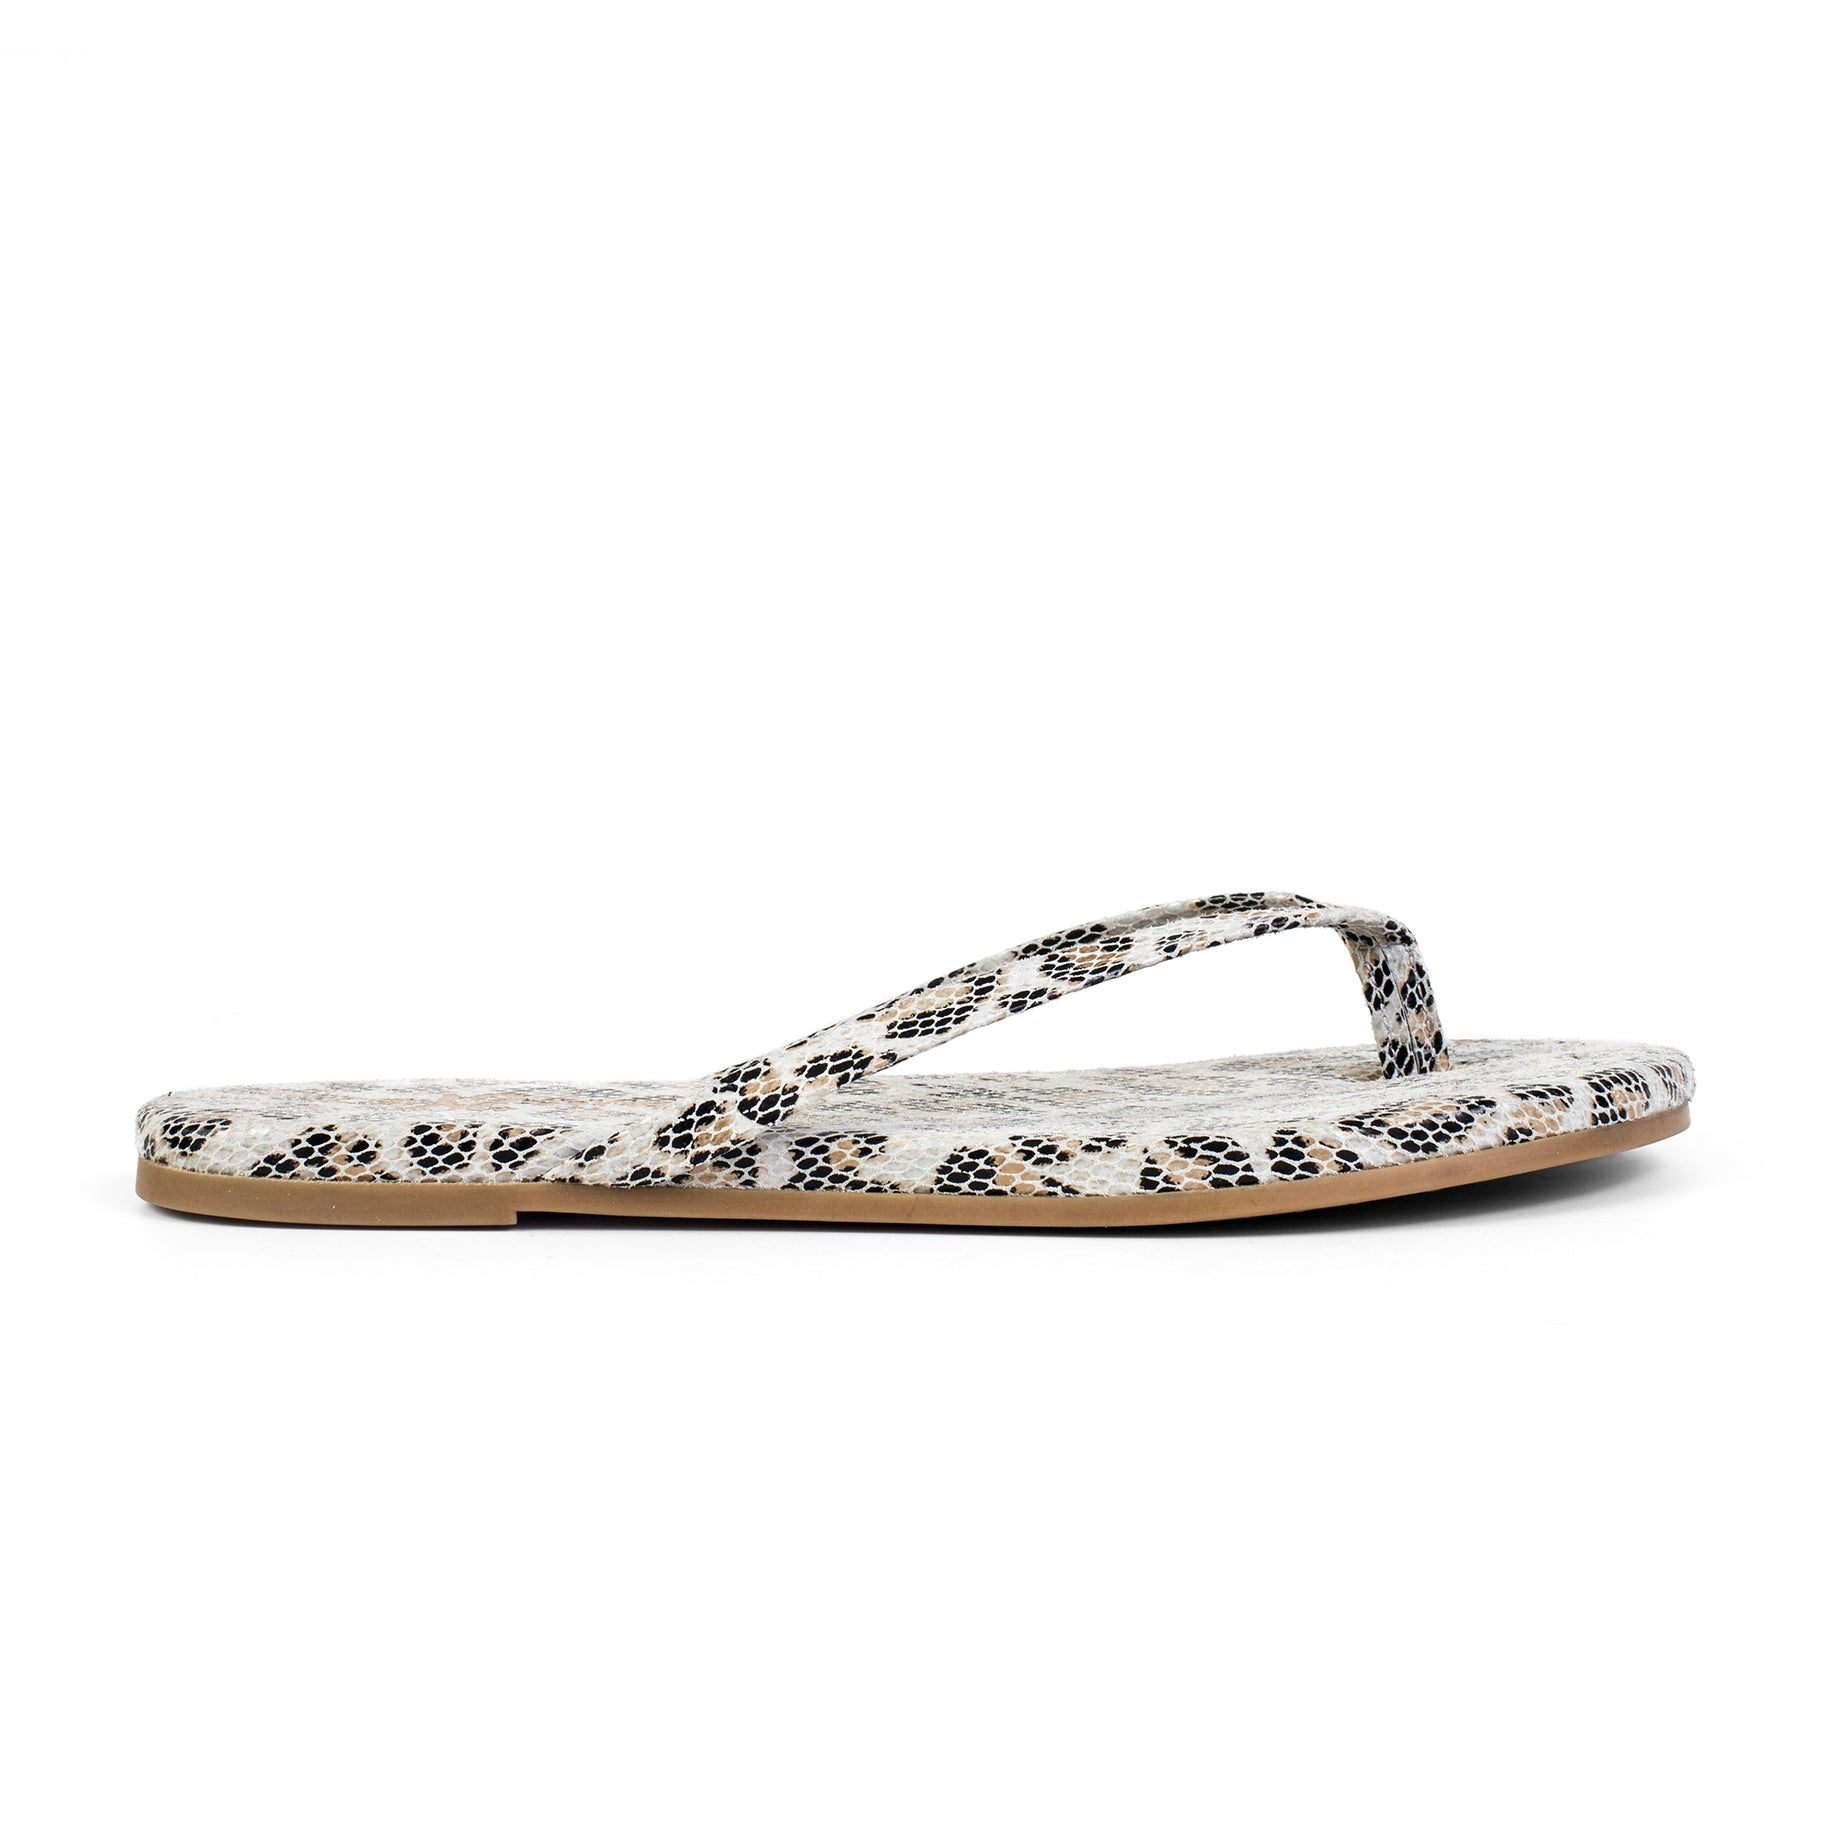 Yosi Samra white snake loepard leather flip flop